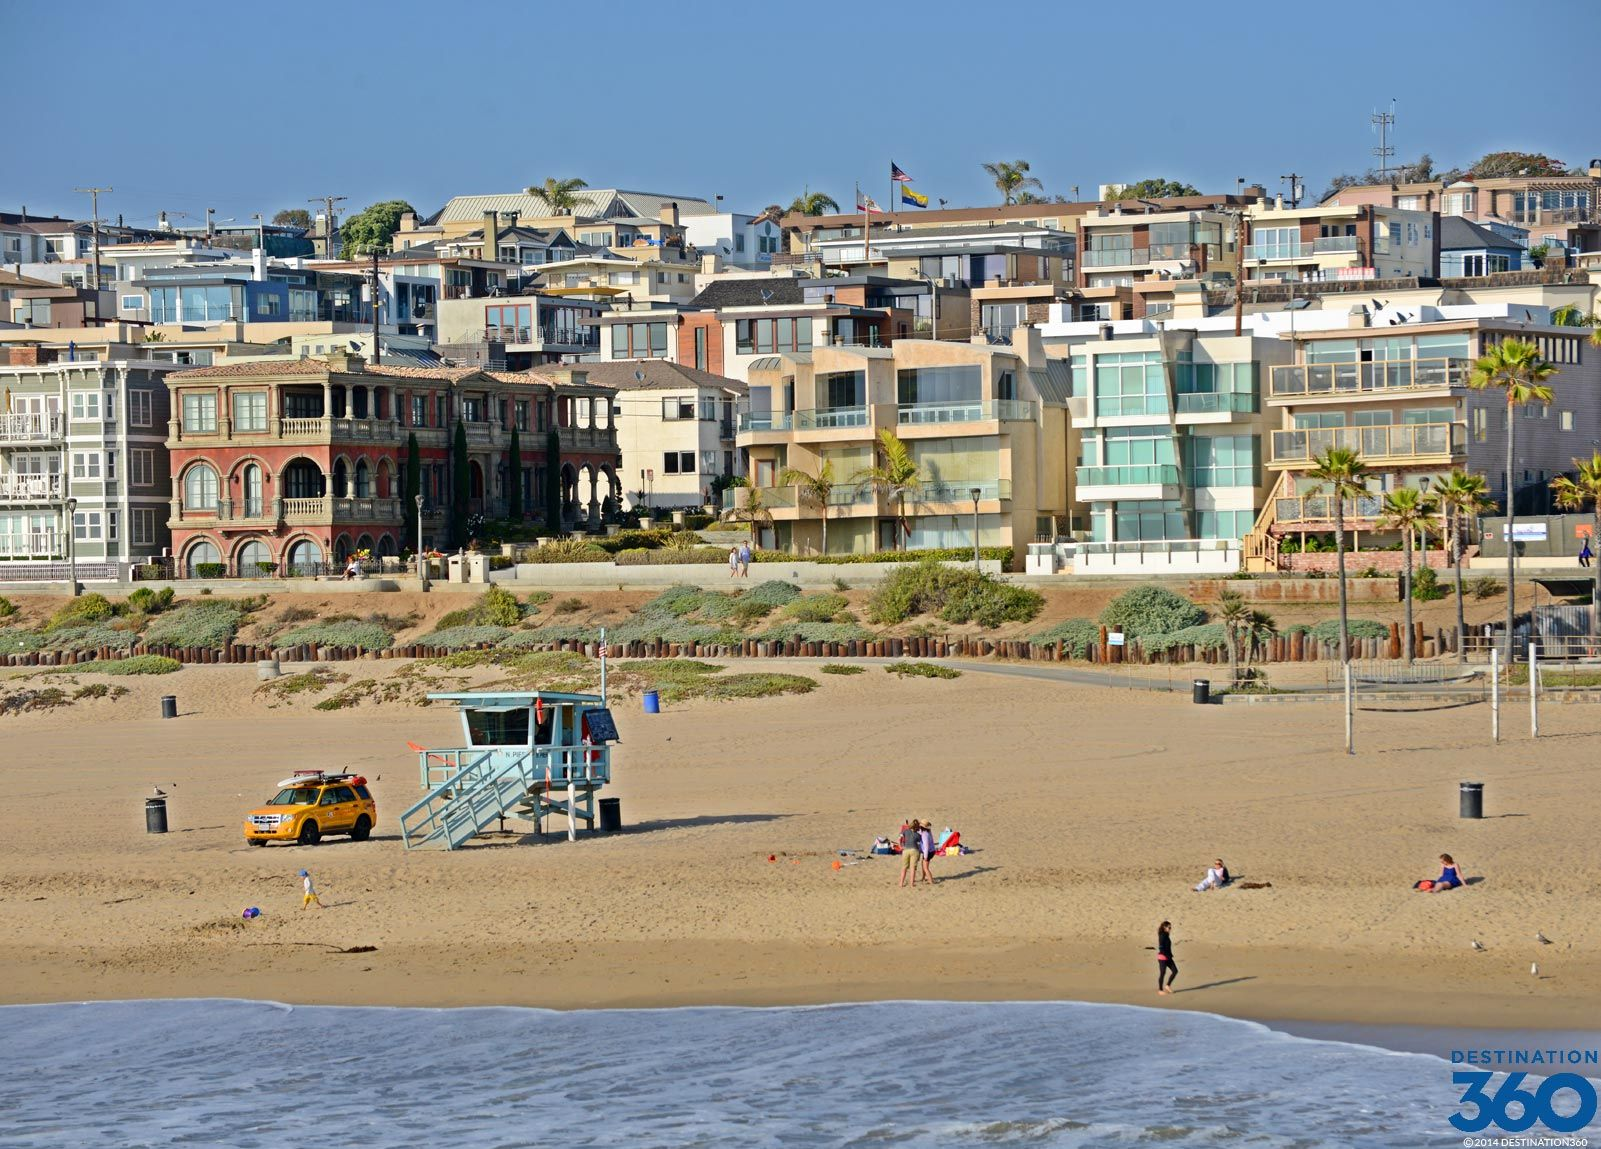 Manhattan Beach California Is Located In Los Angeles County And For Those Seeking A Slice Of The L Life It S An Ideal Fit